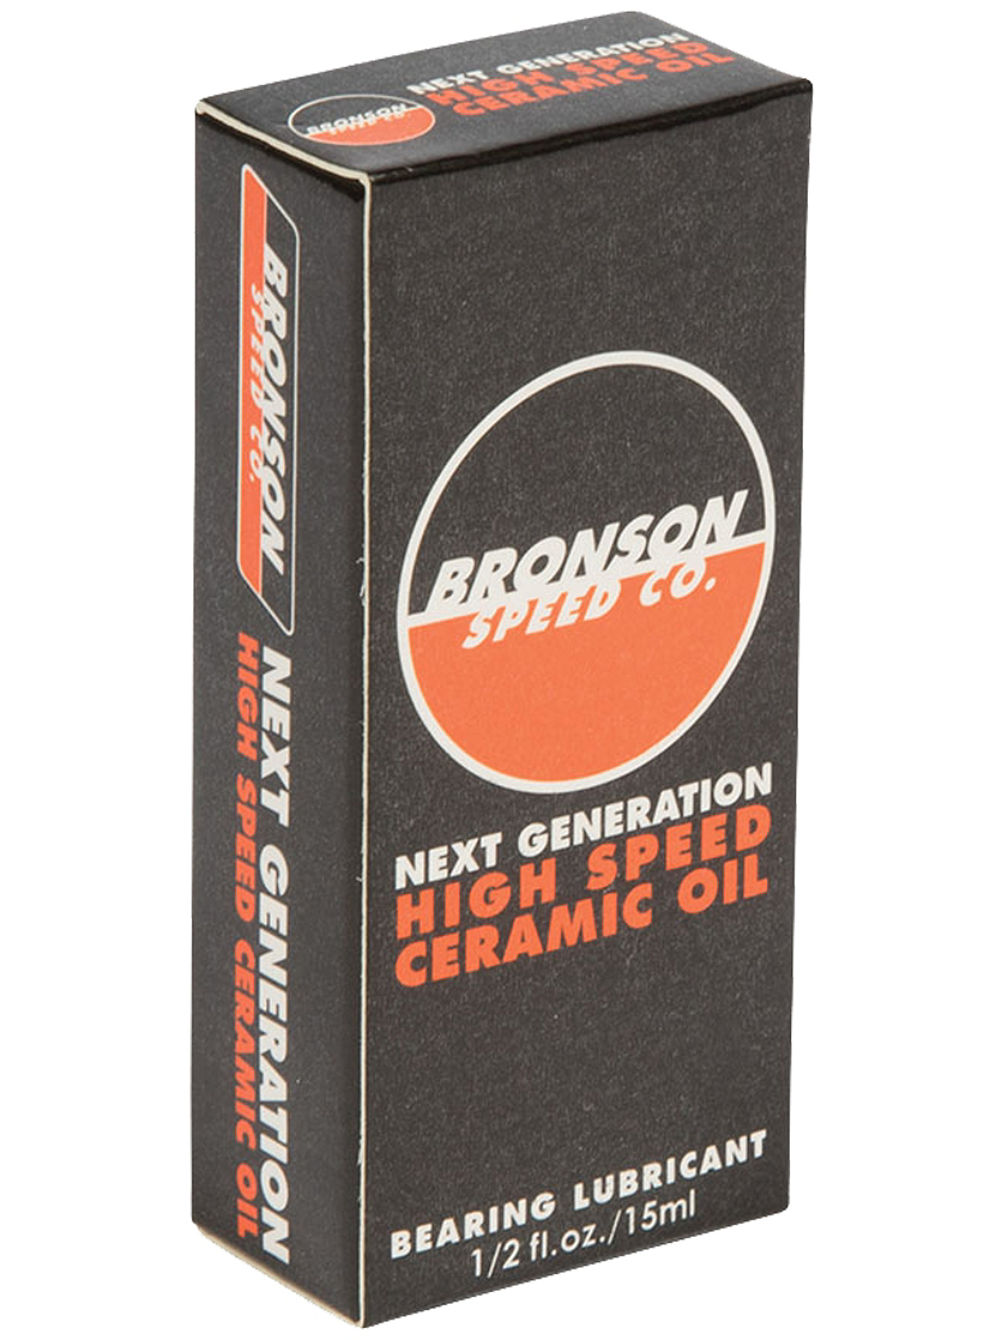 High Speed Ceramic Oil 15Ml Bearings